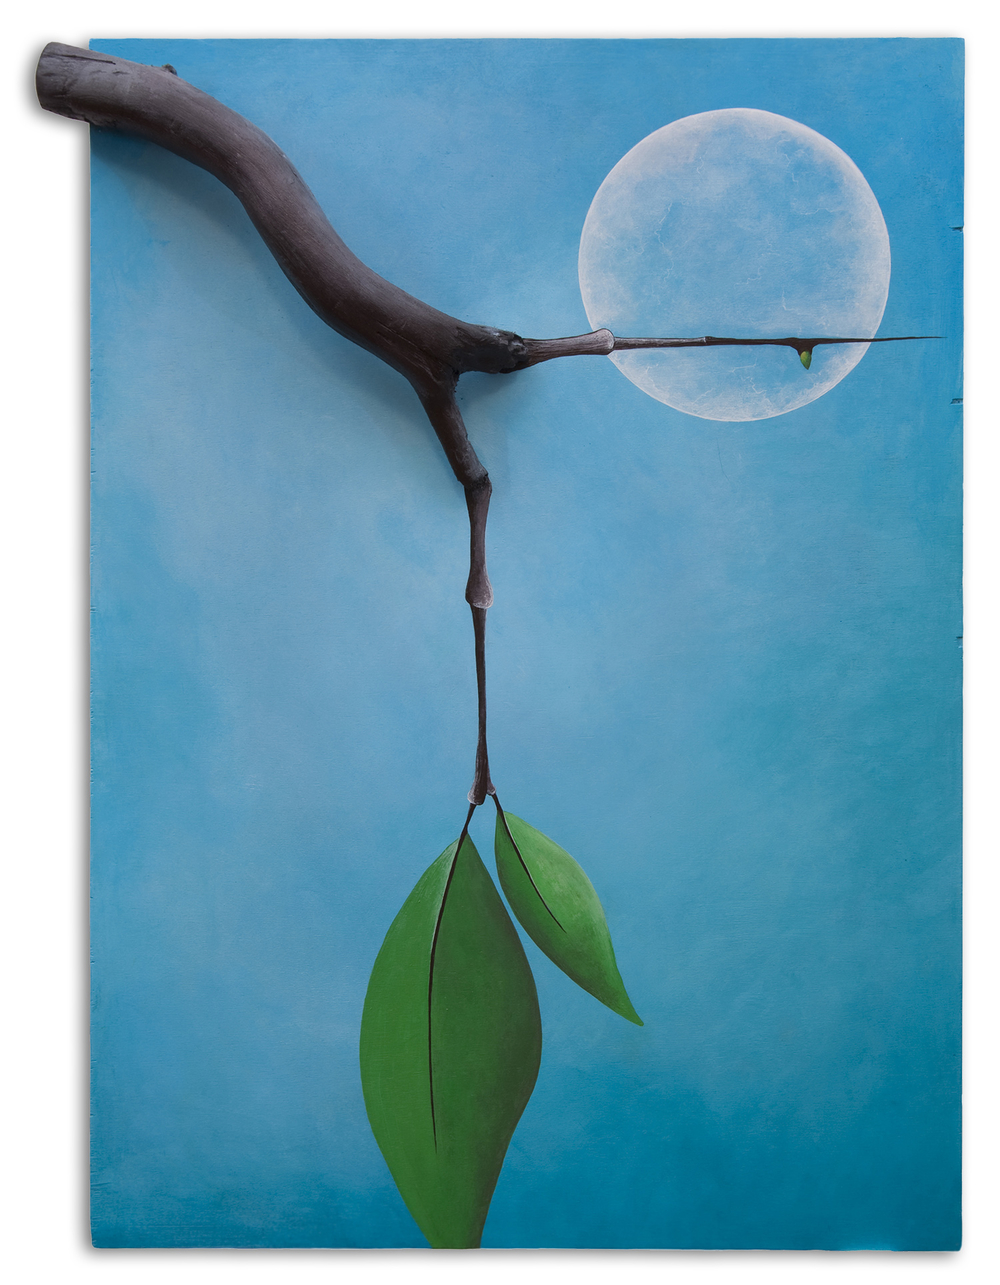 14_blue_moon_branch_leaves.jpg